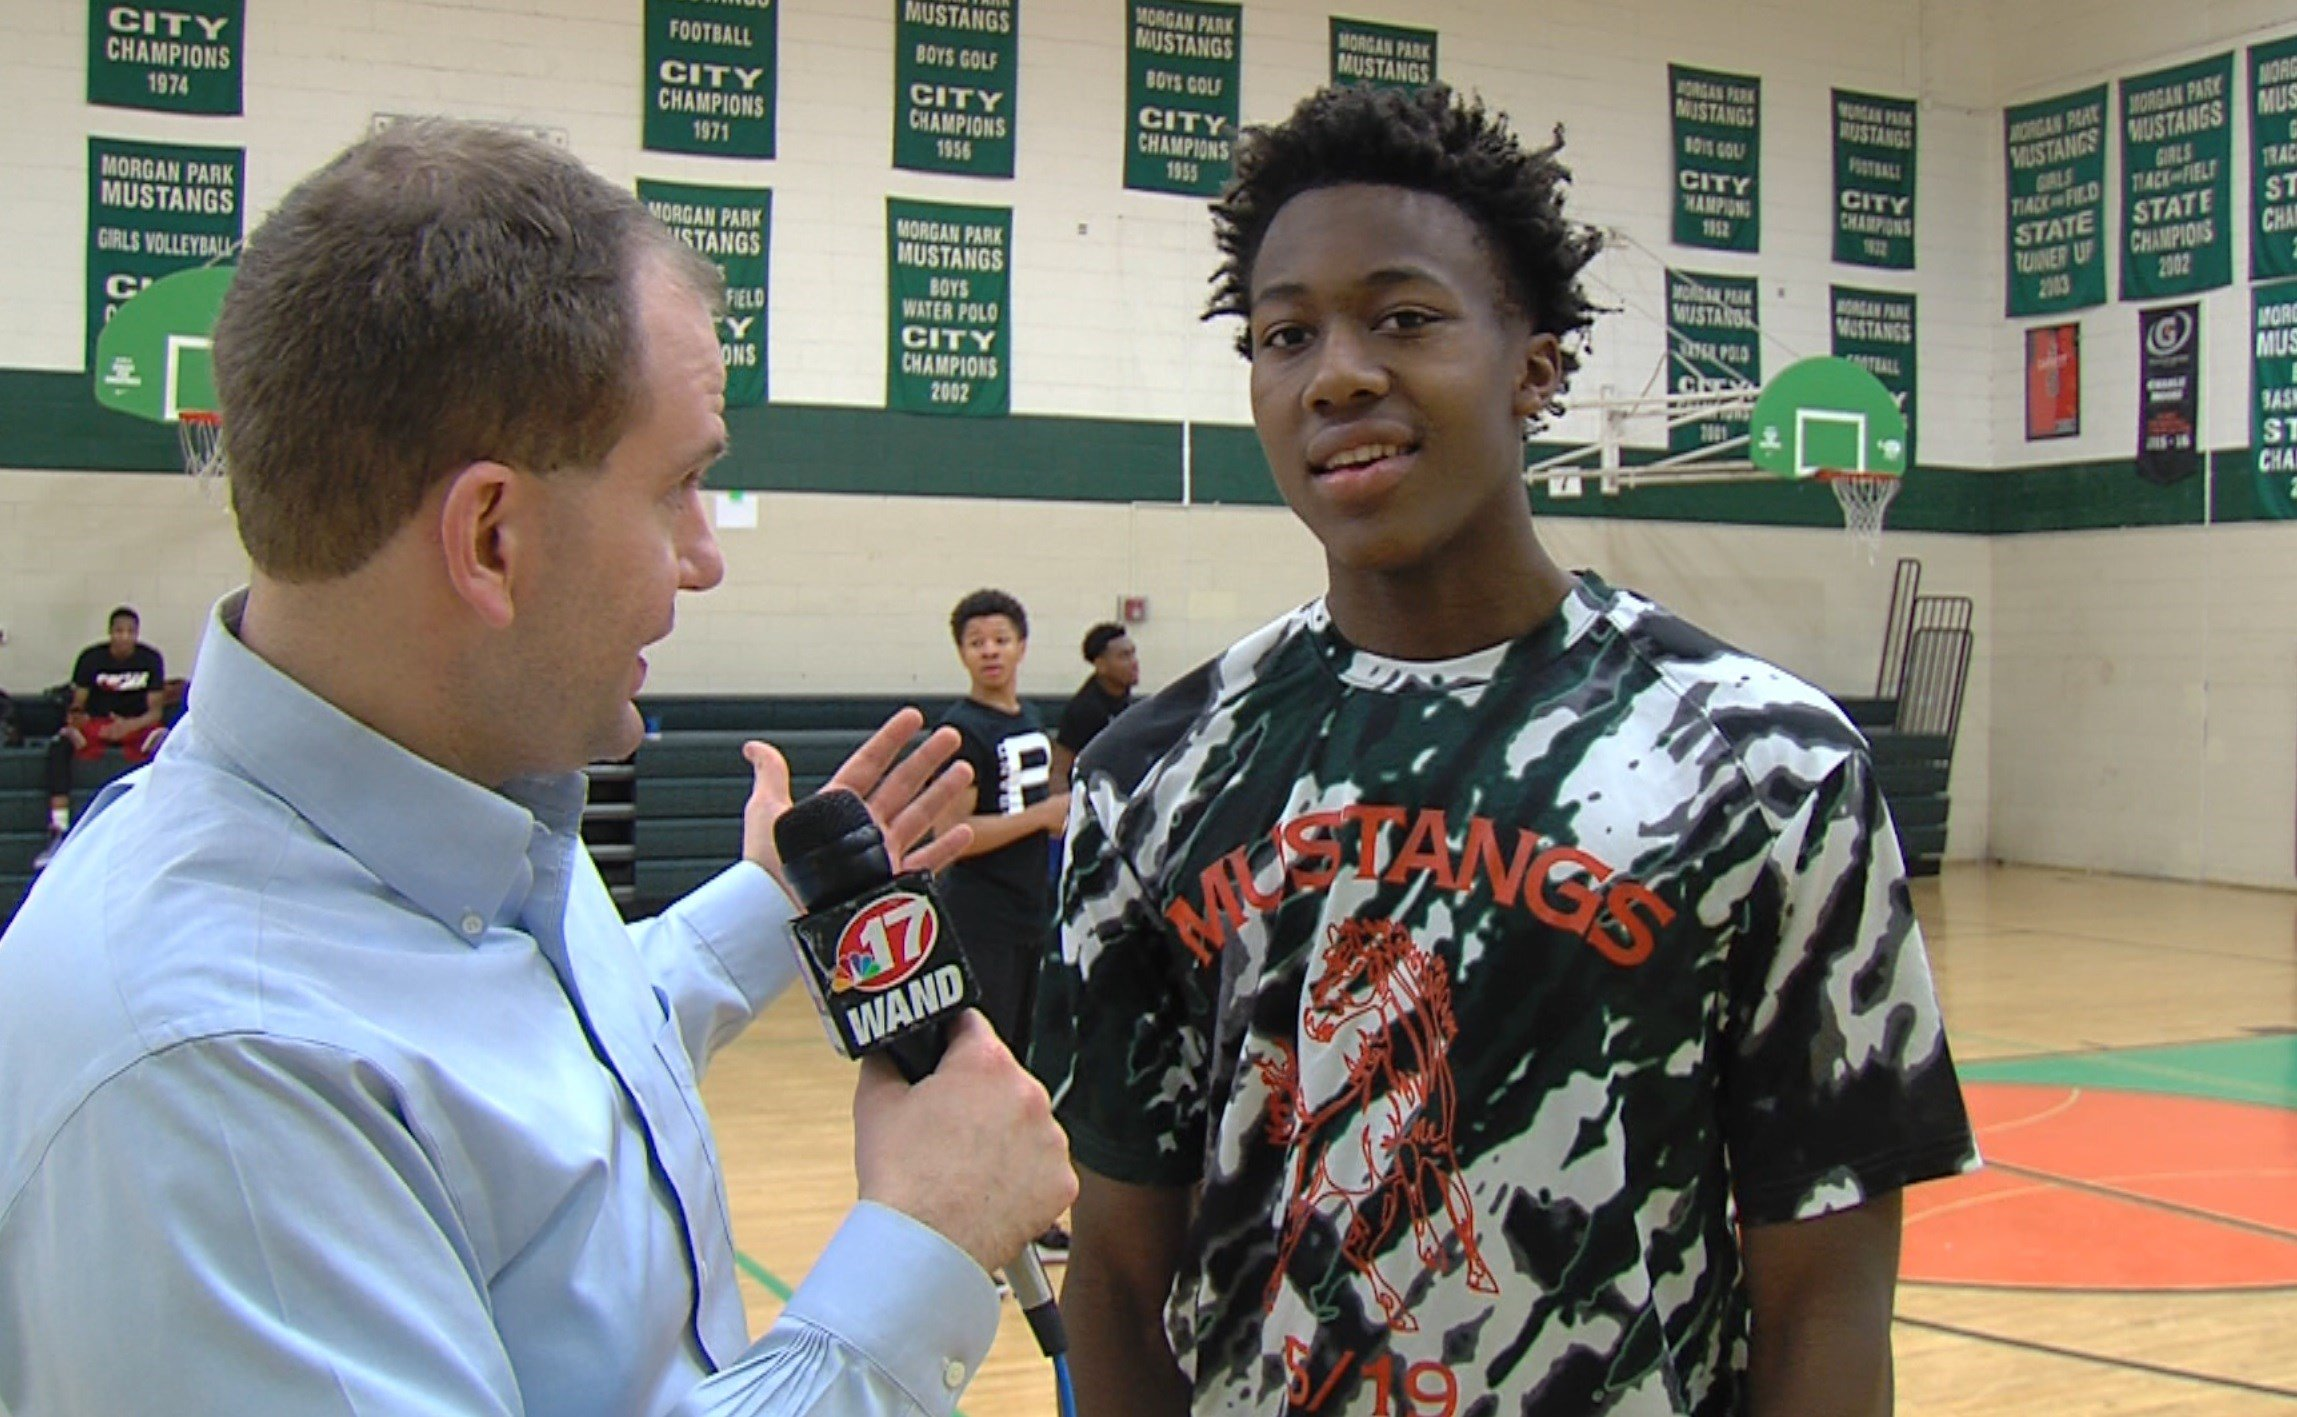 Morgan Park's Ayo Dosunmu is the No. 27 prospect in the country according to the 247Sports composite rankings.